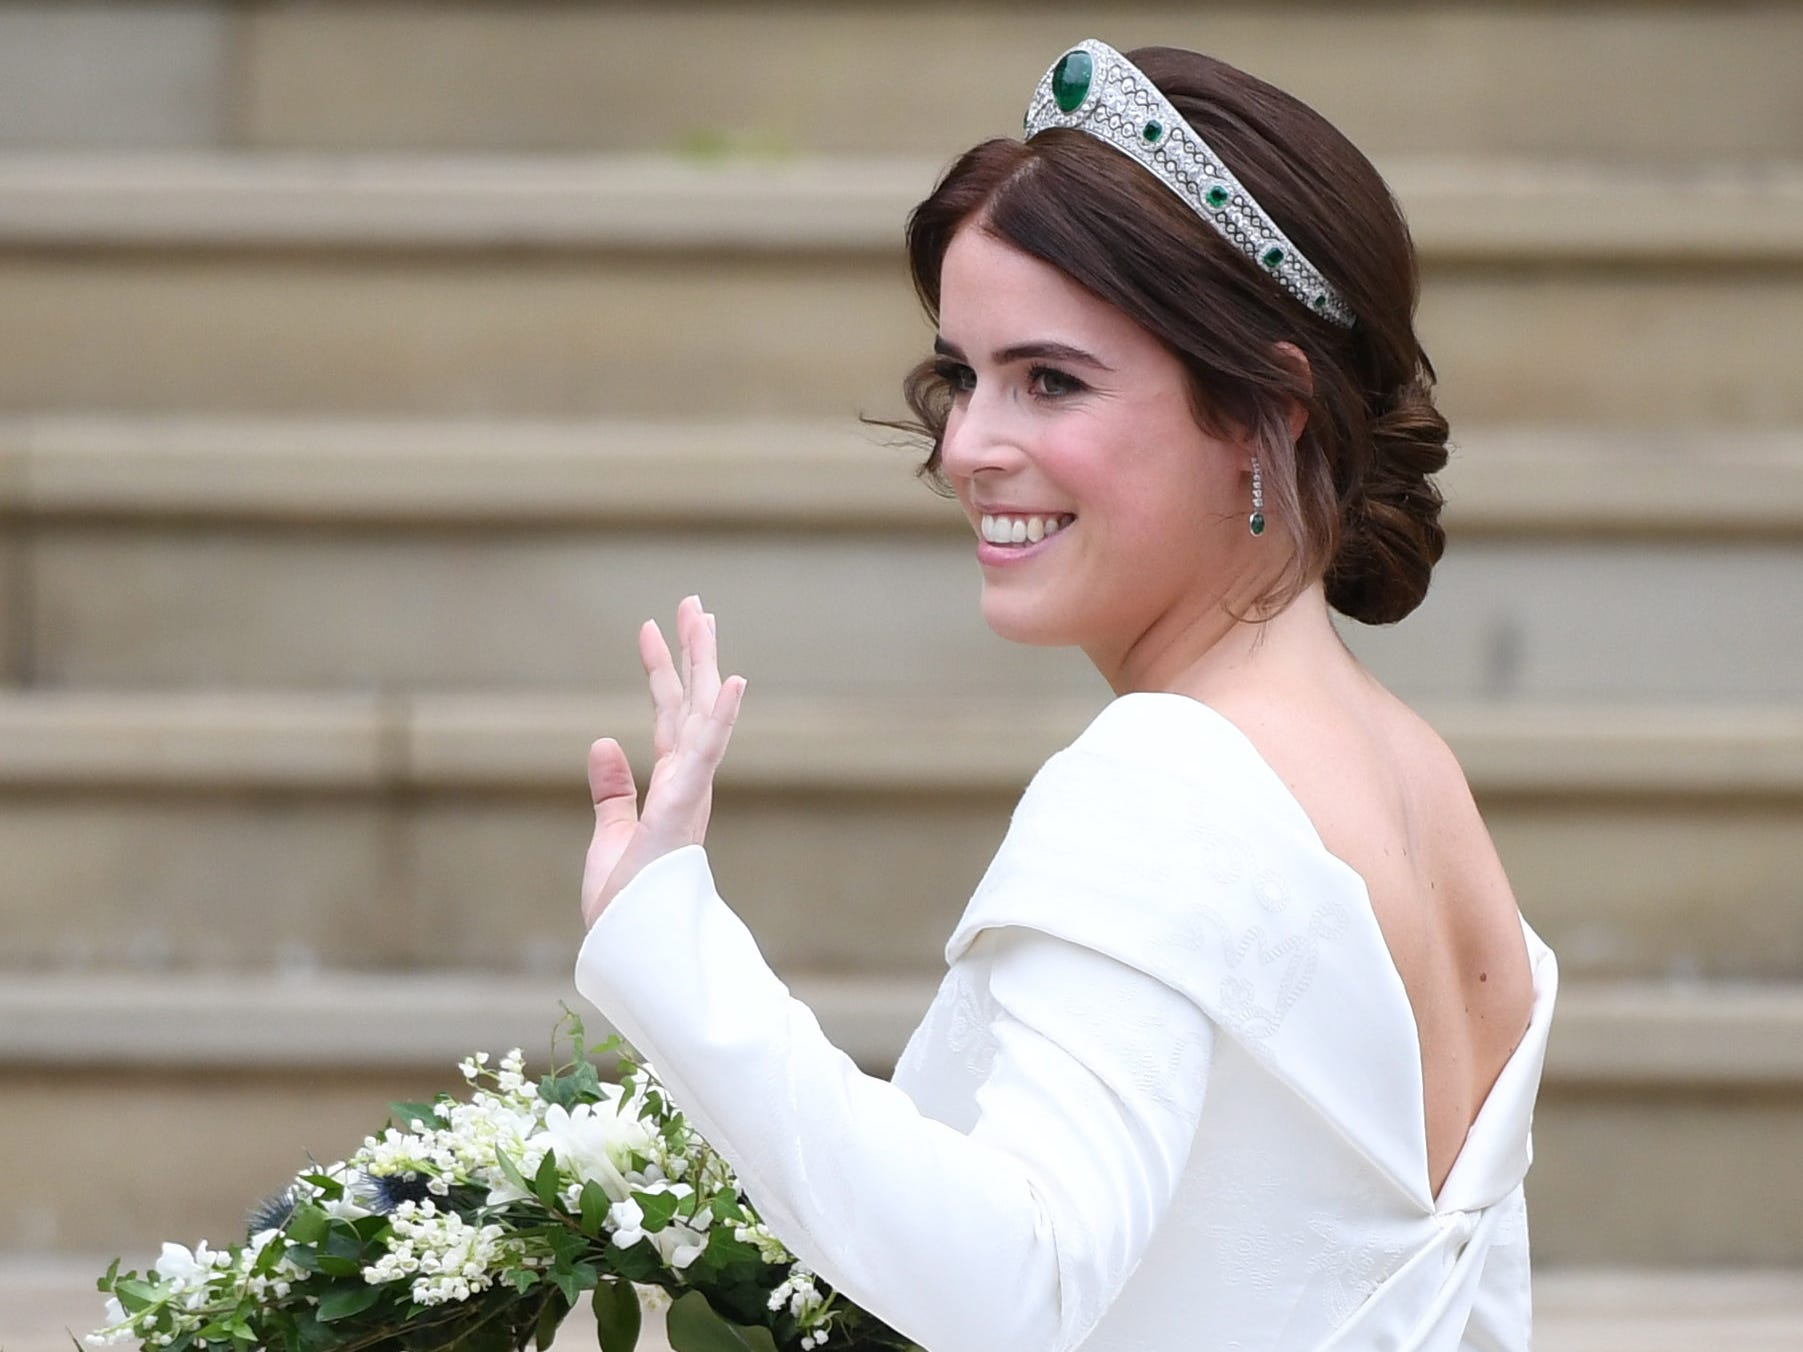 epa07087982 Britain's Princess Eugenie of York arrives for her royal wedding ceremony to Jack Brooksbank at St George's Chapel at Windsor Castle, in Windsor, Britain, 12 October 2018.  EPA-EFE/NEIL HALL ORG XMIT: FMA0001